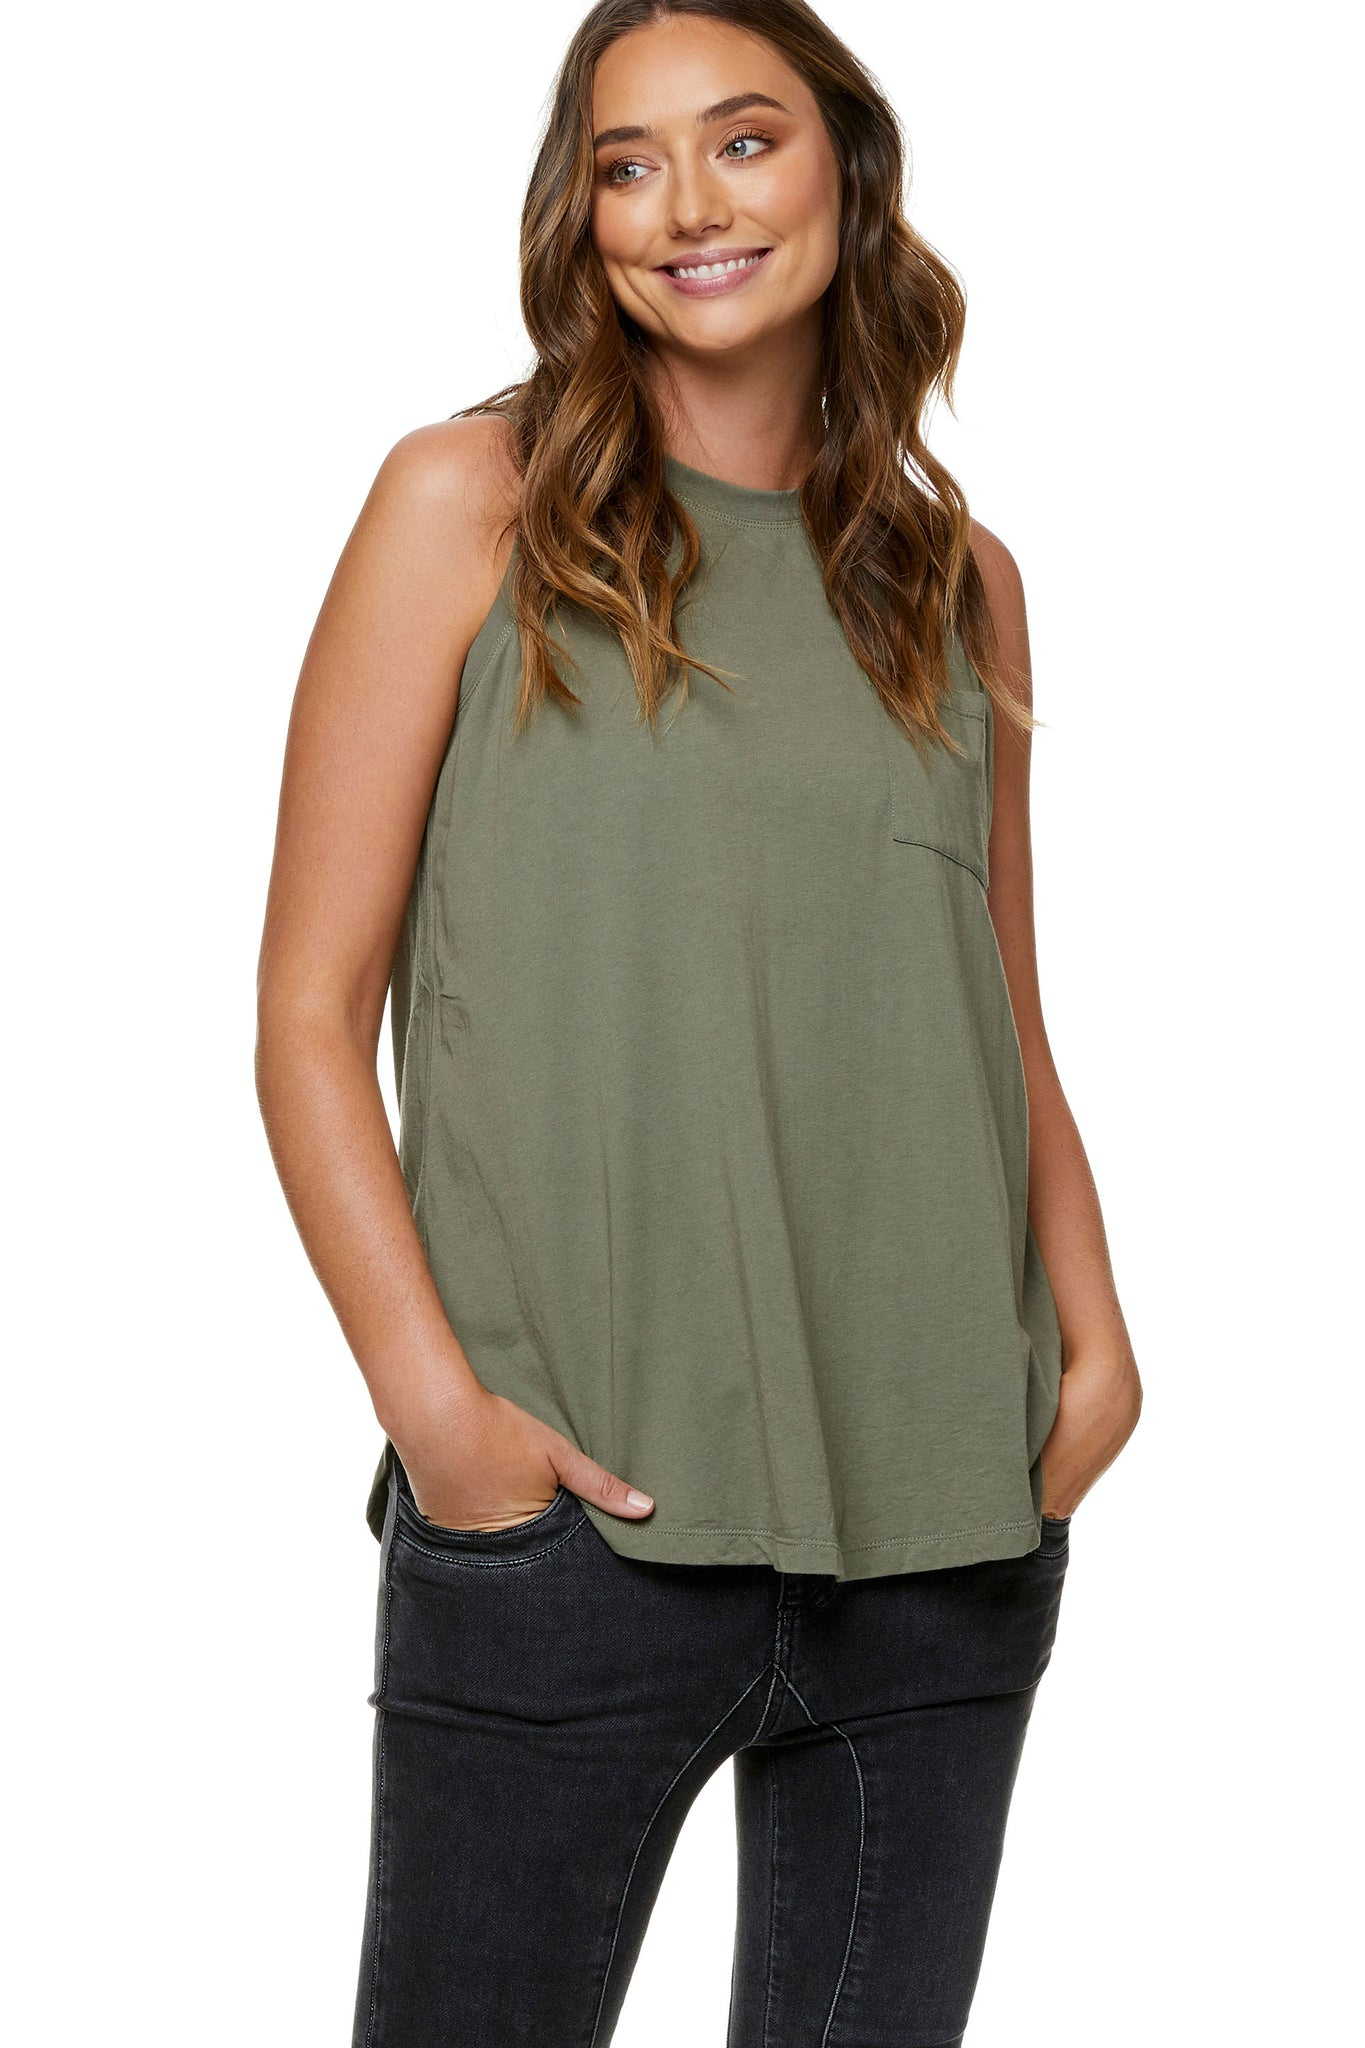 Maternity tank top Khaki 3